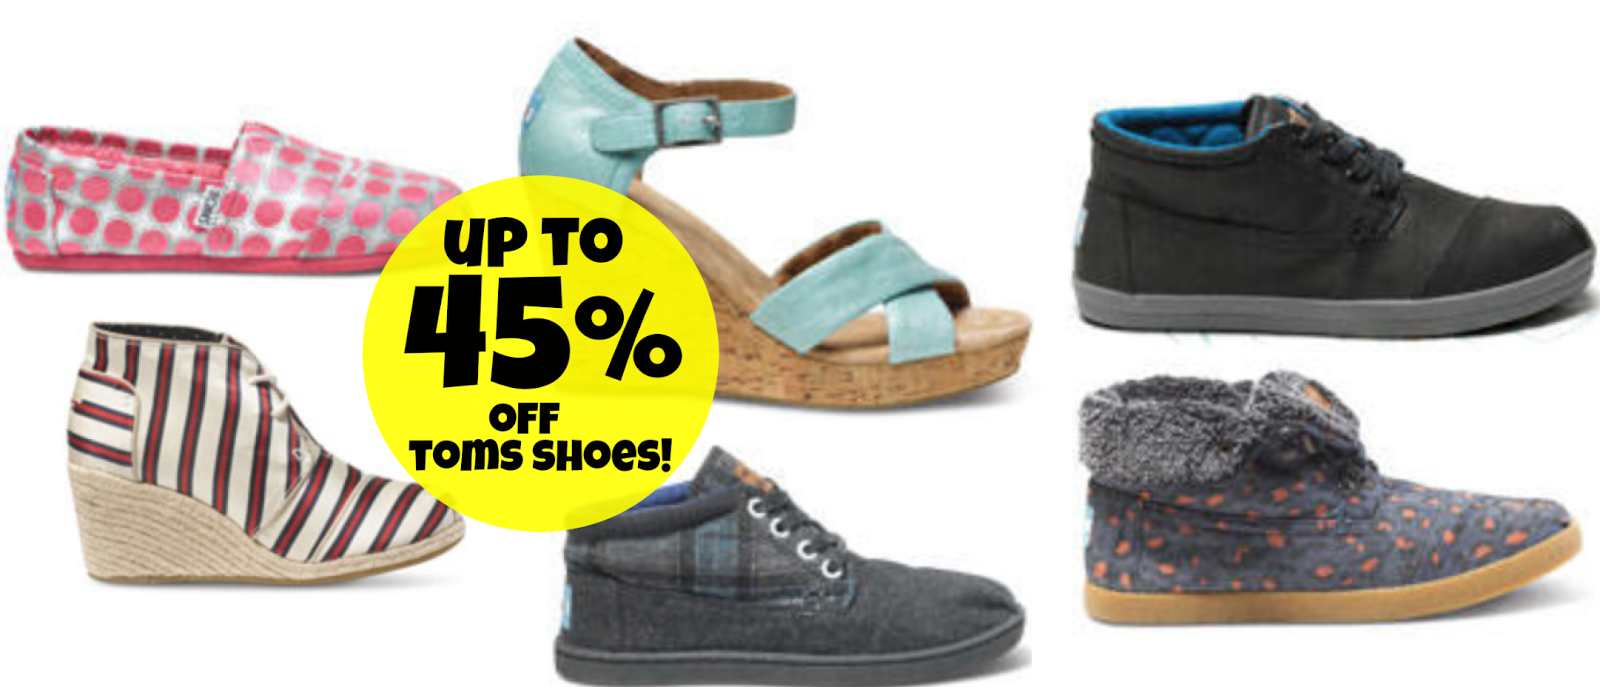 http://www.thebinderladies.com/2014/10/toms-shoes-up-to-45-off-all-shoes.html#.VD2AYEvdtbw